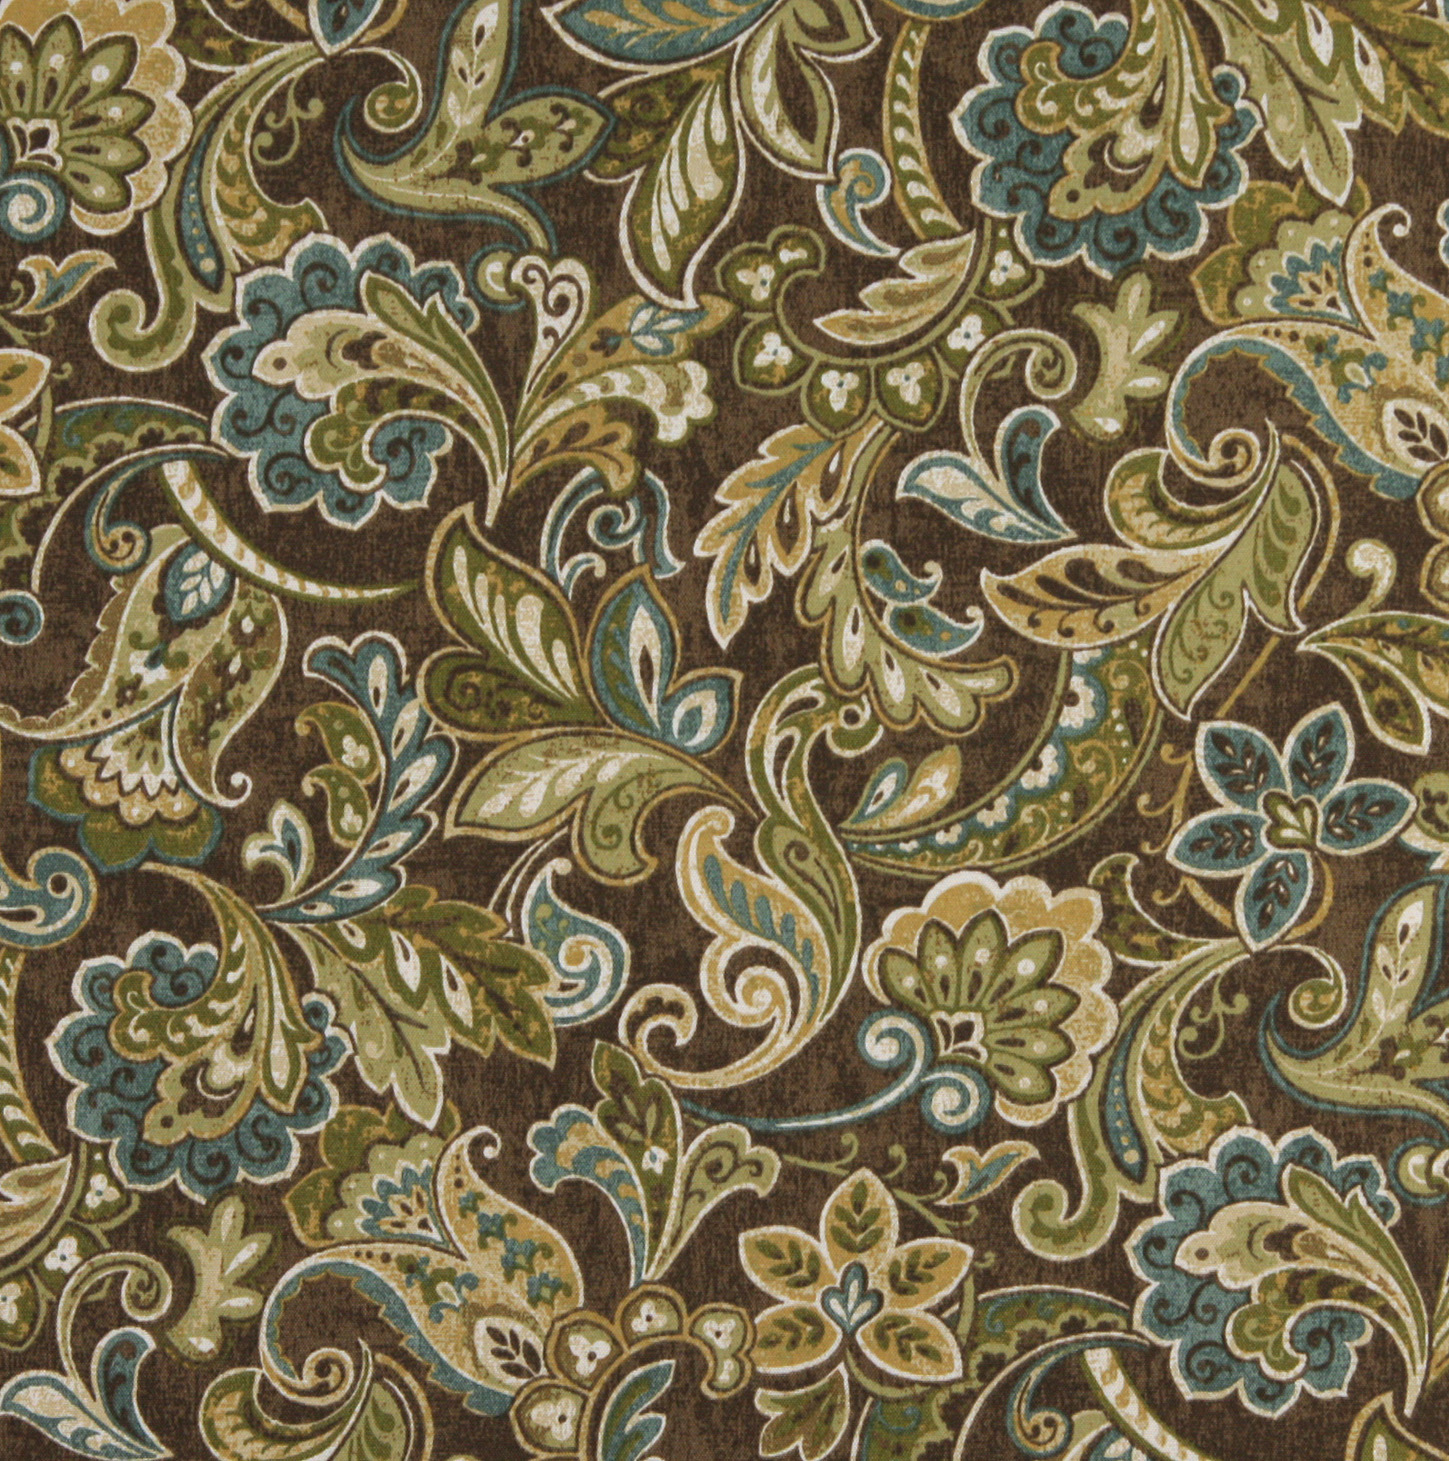 Mocha Aqua And Beige Large Floral Paisley Upholstery Fabric